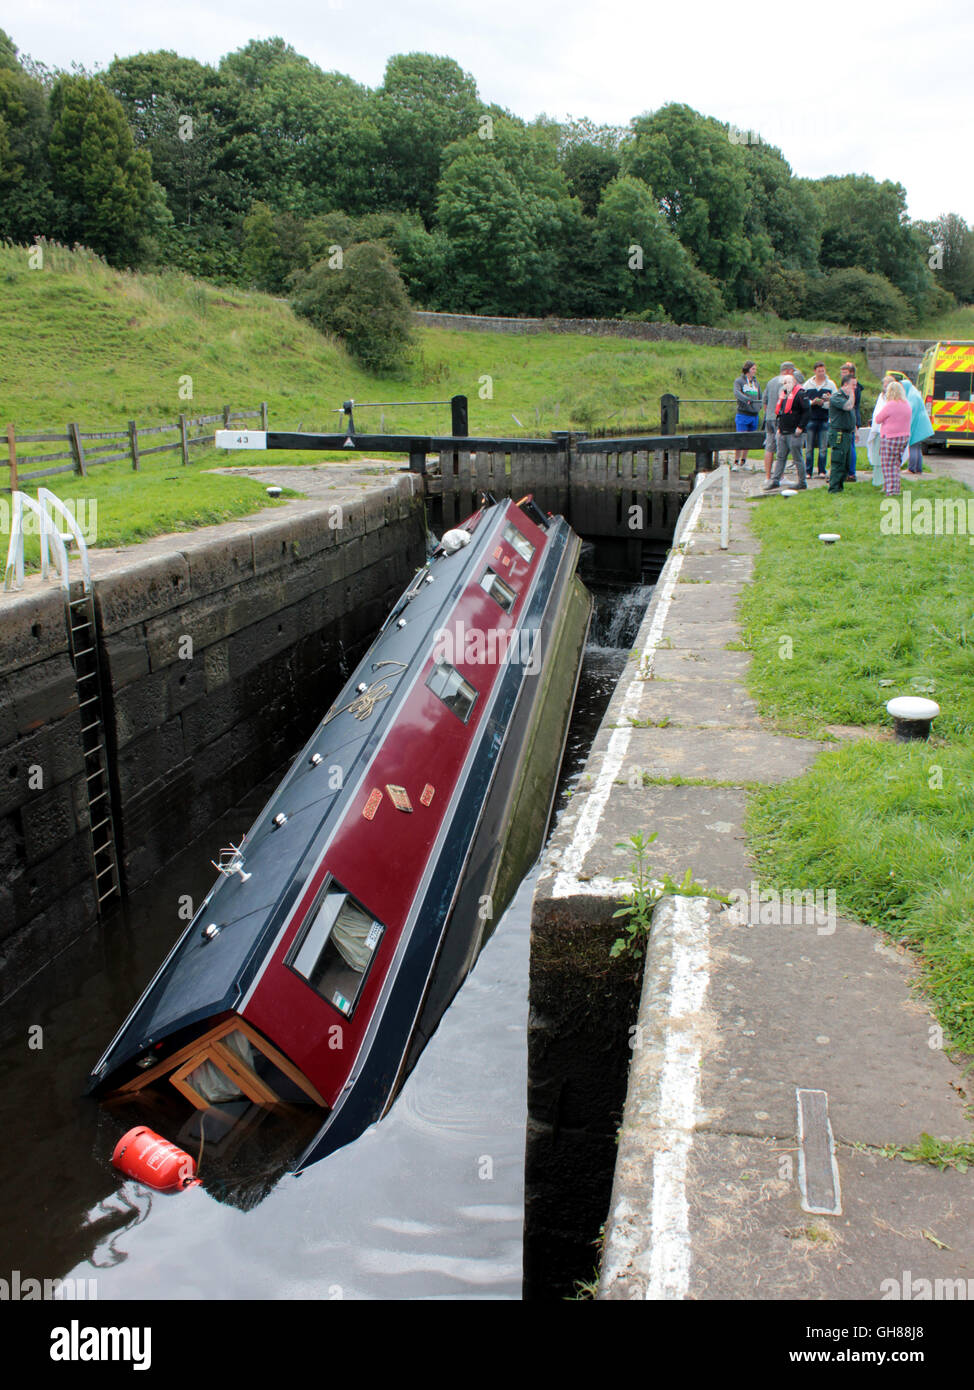 A holiday hire narrow boat has sunk in a lock on the Leeds and Liverpool canal near Greenberfield, Lancashire England - Stock Image